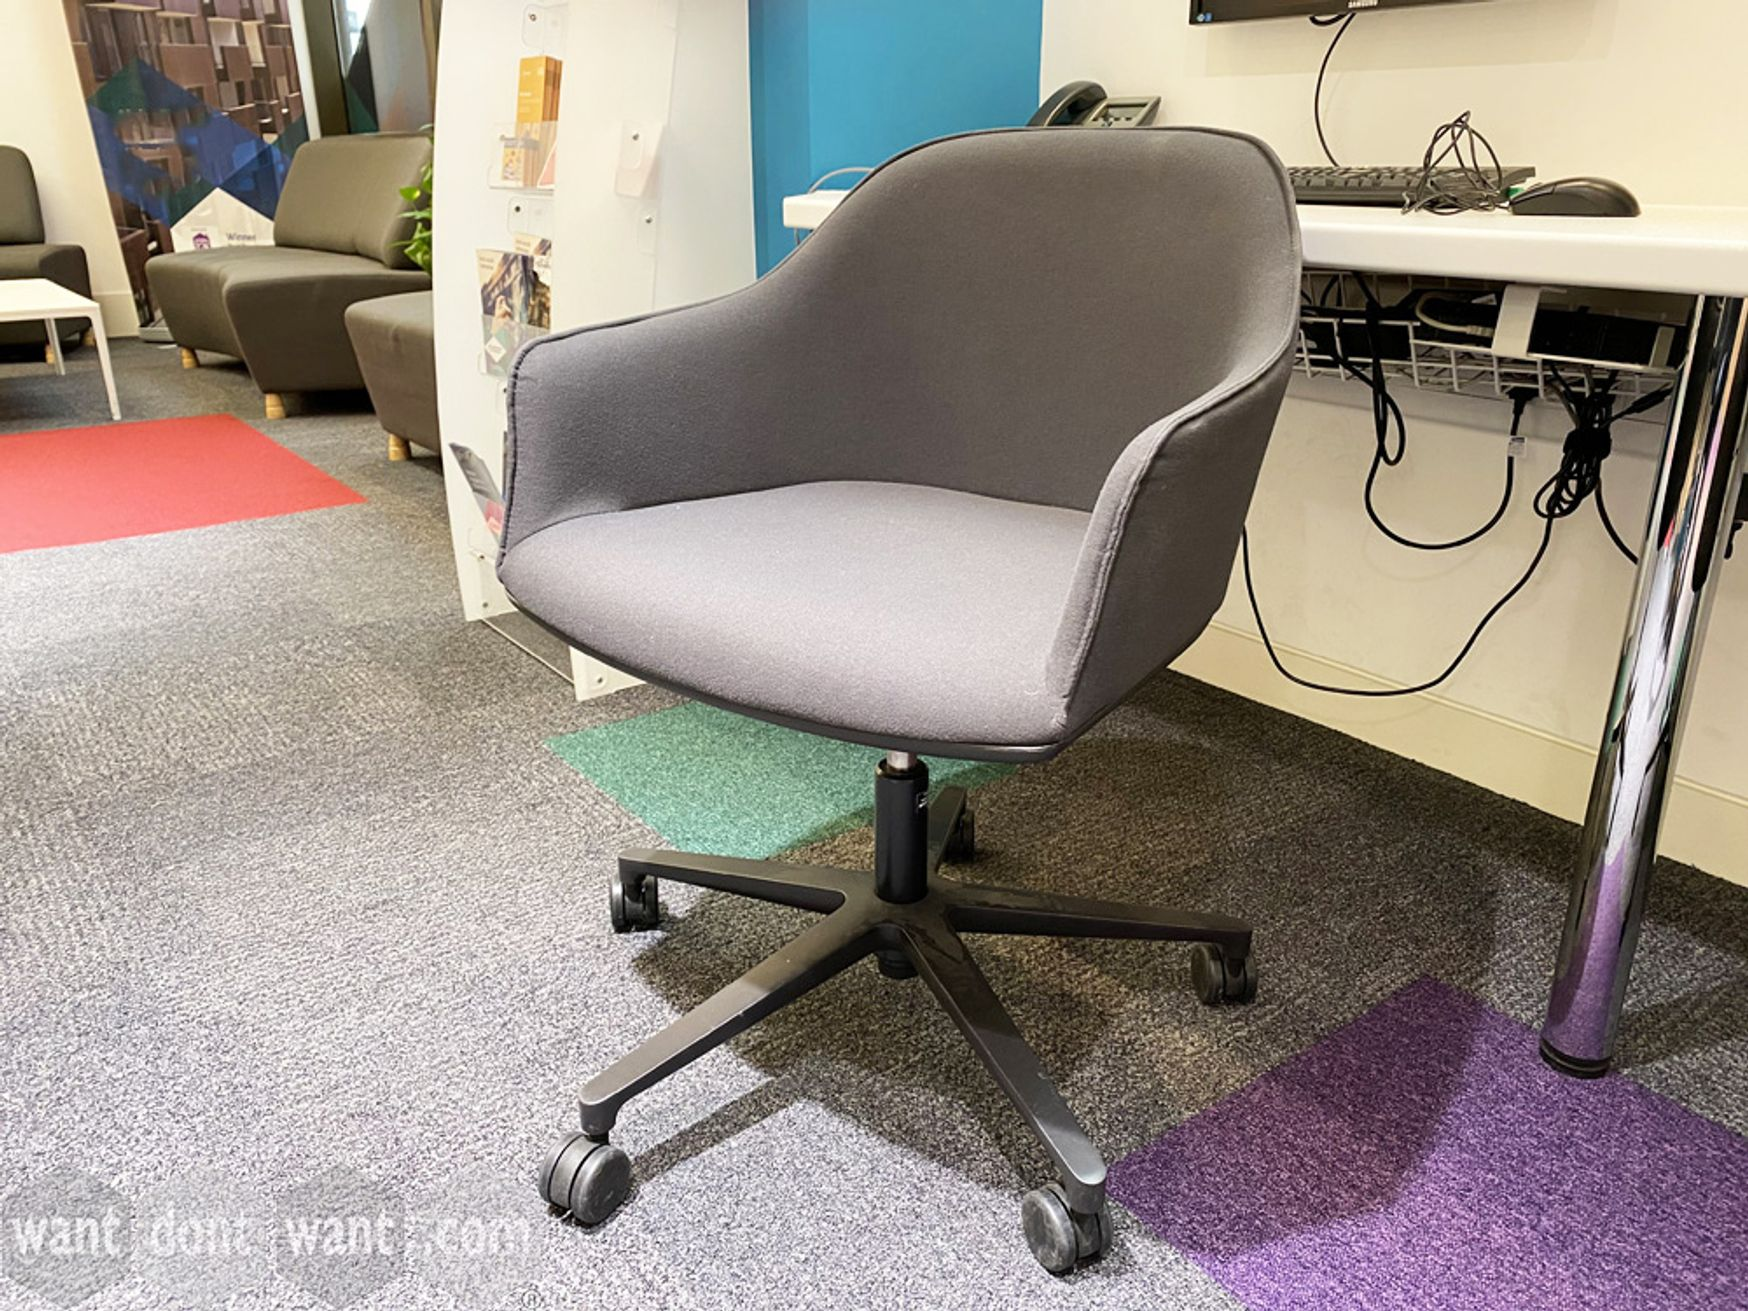 Used Vitra 'Soft Shell' swivel chairs on castors